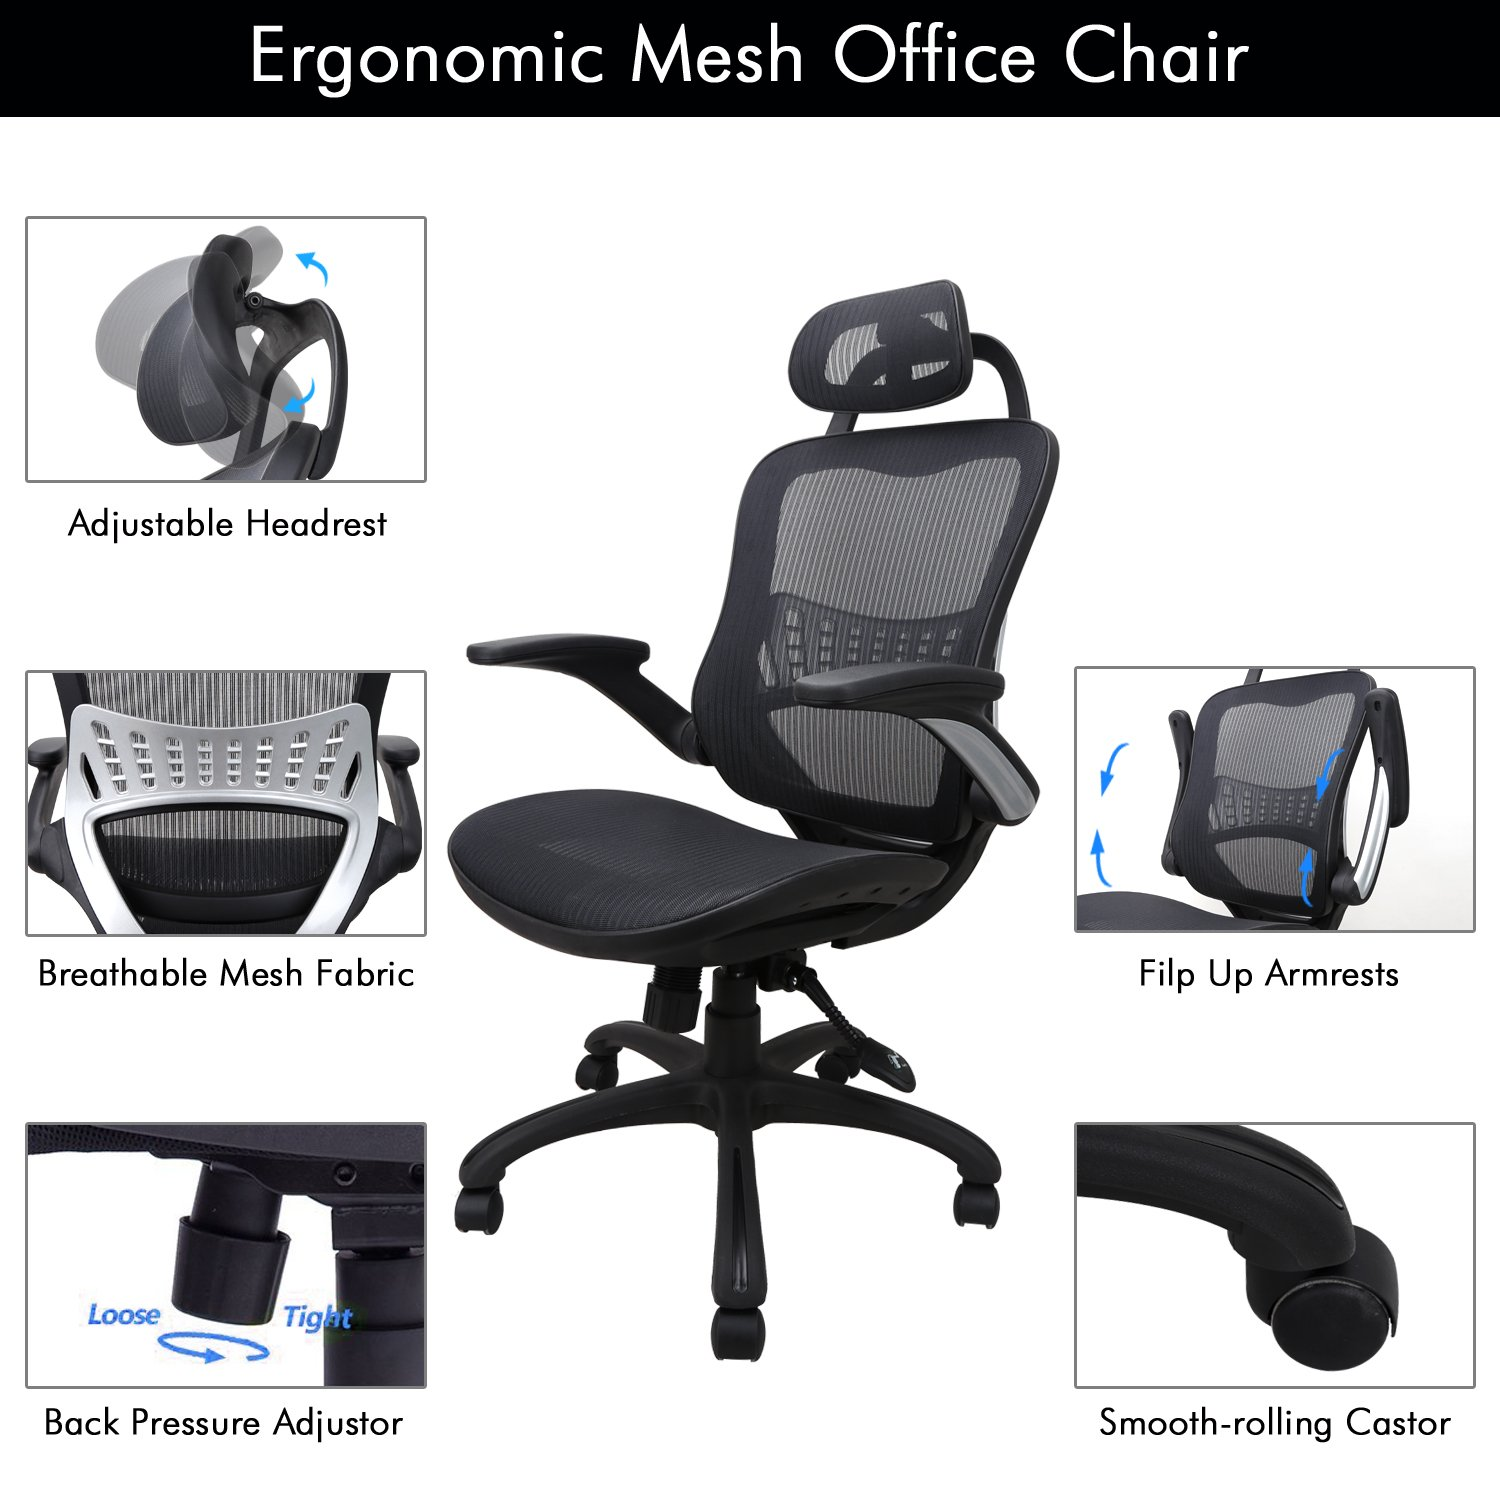 Komene Ergonomic Chairs for Office &Home: Passed BIFMA/SGS Weight Support Over 300Ibs,The Most Comfortable Mesh Cushion&High Back-Adjustable Headrest Backrest,Flip-up Armrests,360-Degree Swivel Chairs by Komene (Image #3)